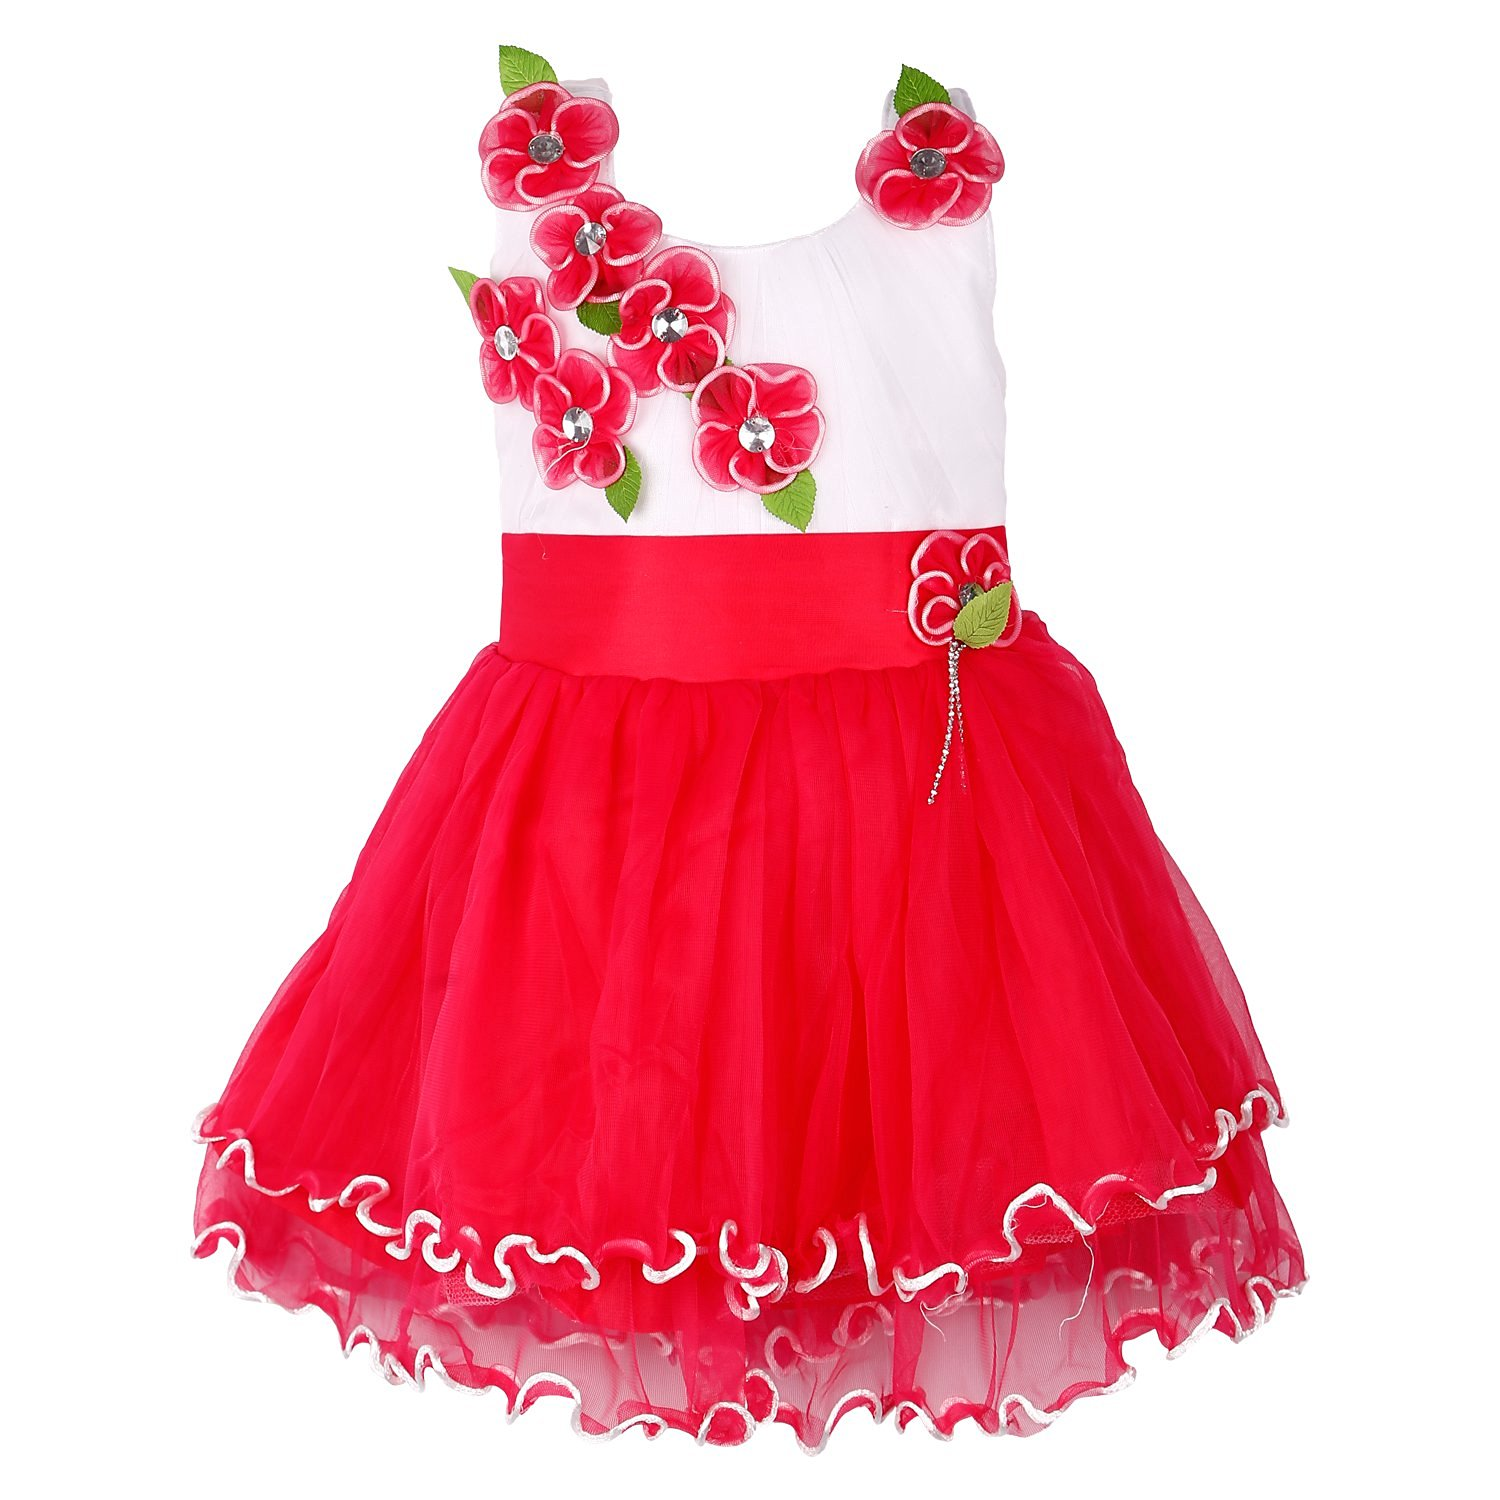 Baby Girl Party Wear Frocks. Indulge in the best of party wear baby frocks online with our online store. Find the beautiful Indian dresses, party frocks and gowns and various party wear for kids in latest designs for your adorable baby girl. We make unique birthday frocks and comfy cotton frocks for all occasions.